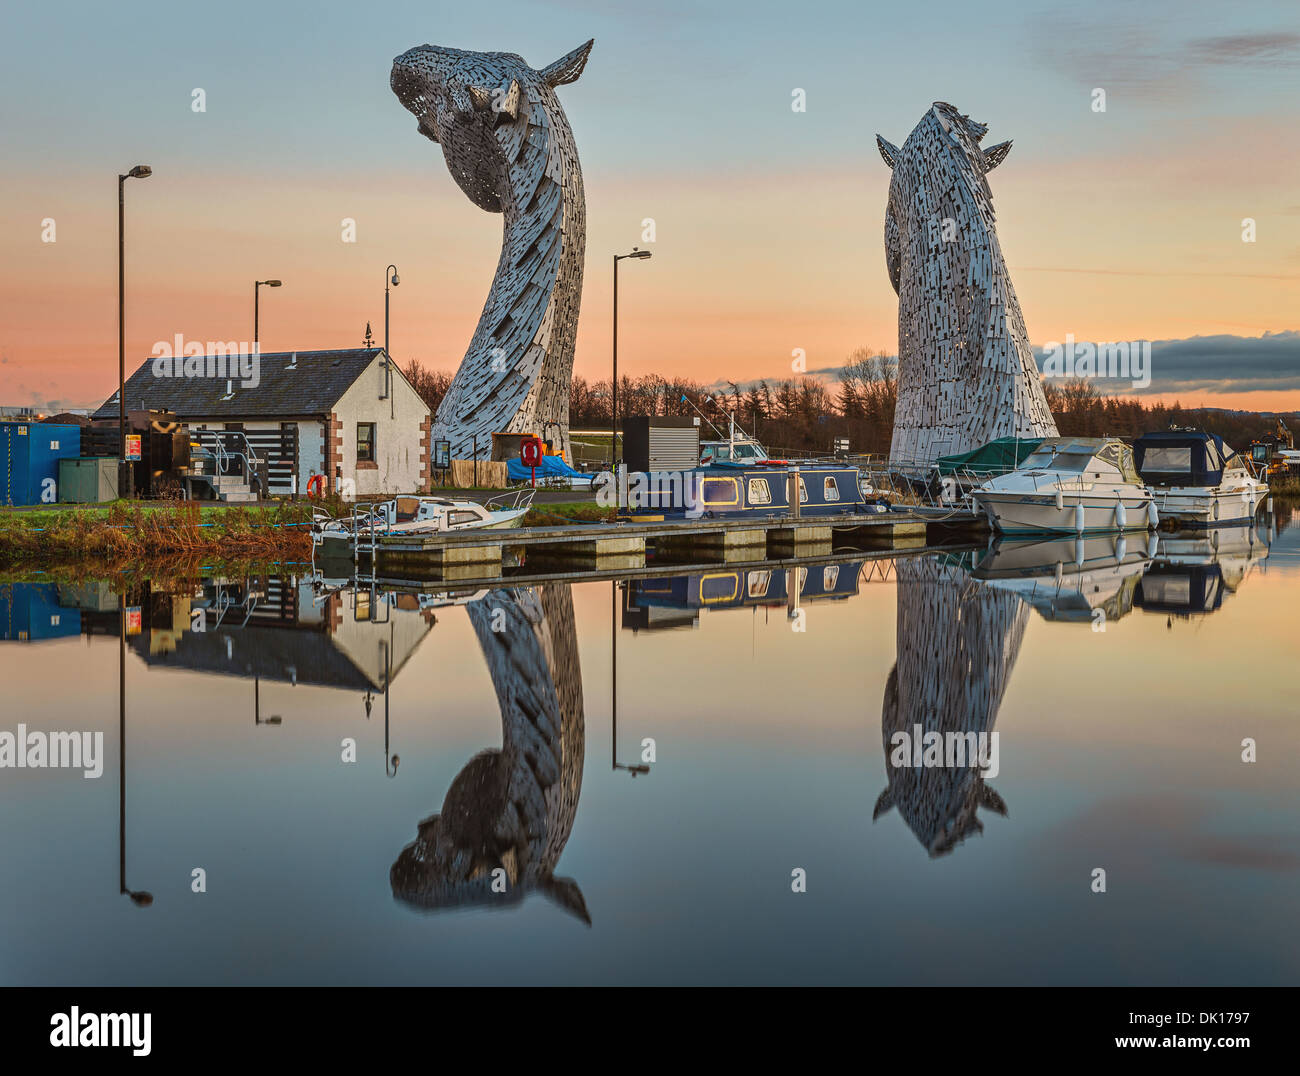 The Kelpies located within the Helix Park in Falkirk, Scotland on a calm sunny day - images taken during/just after sunset - Stock Image